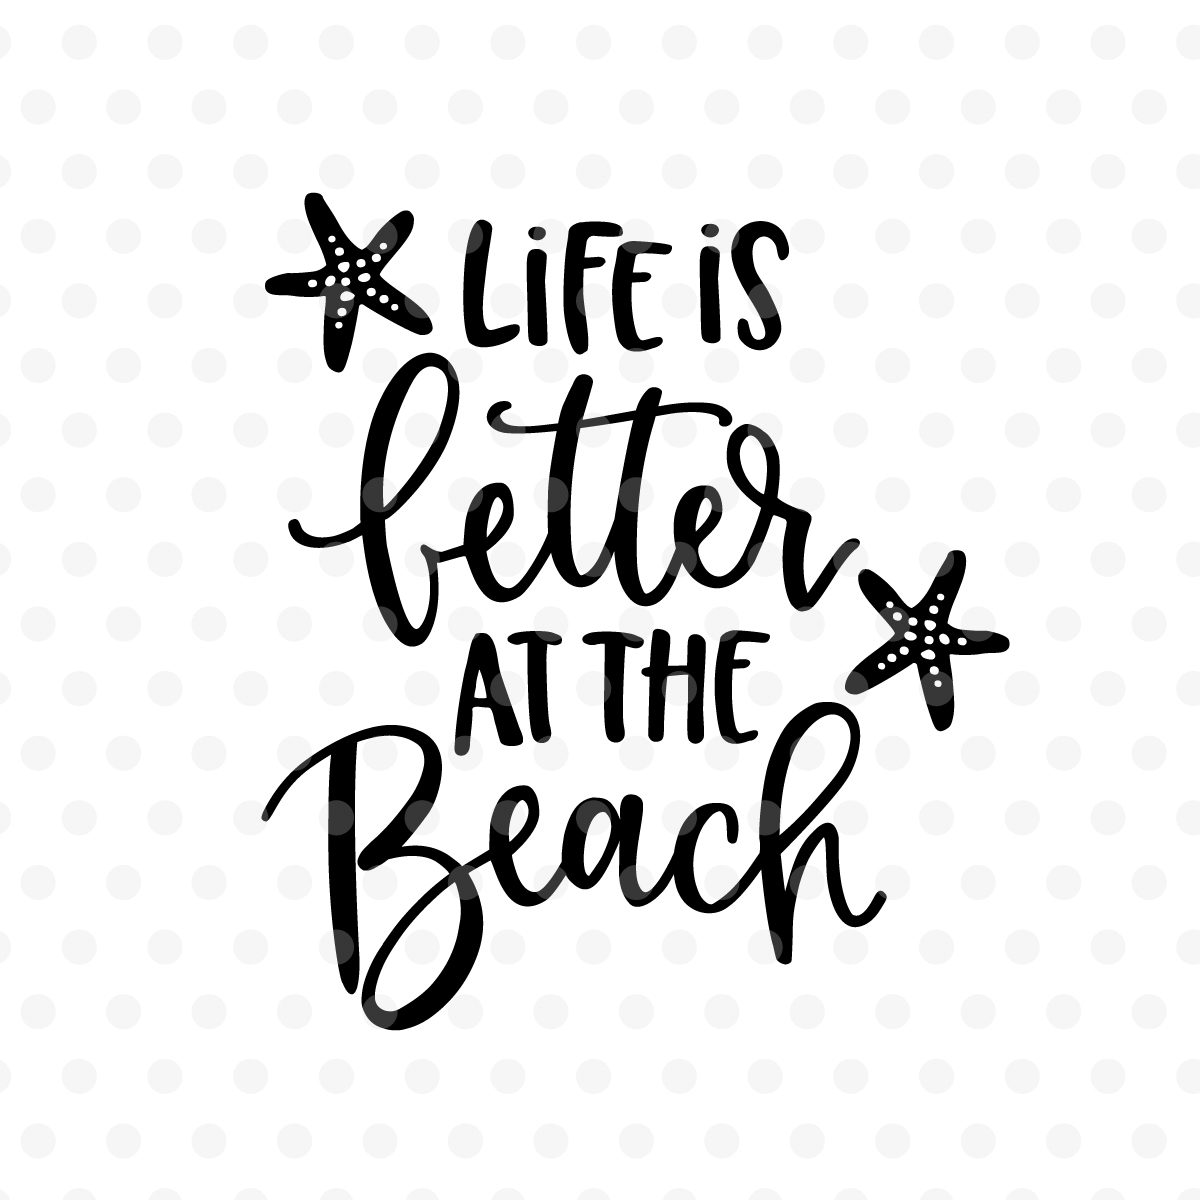 Life is better at the Beach SVG, EPS, PNG, DXF example image 2